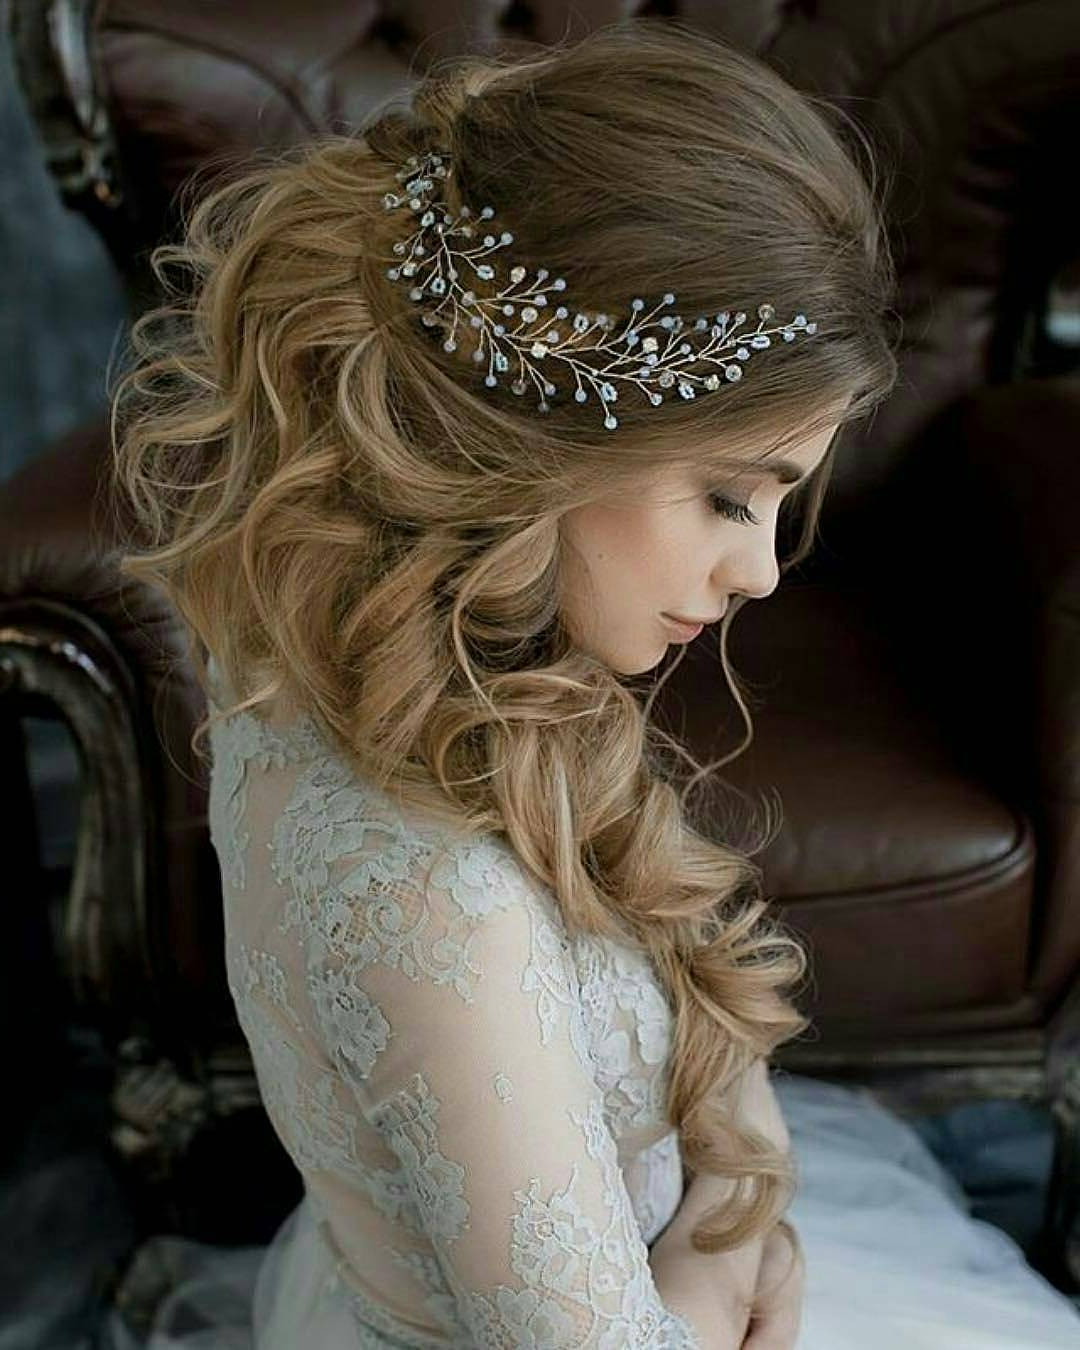 10 Lavish Wedding Hairstyles For Long Hair – Wedding Hairstyle Ideas With Regard To Well Known Relaxed And Regal Hairstyles For Wedding (Gallery 5 of 20)